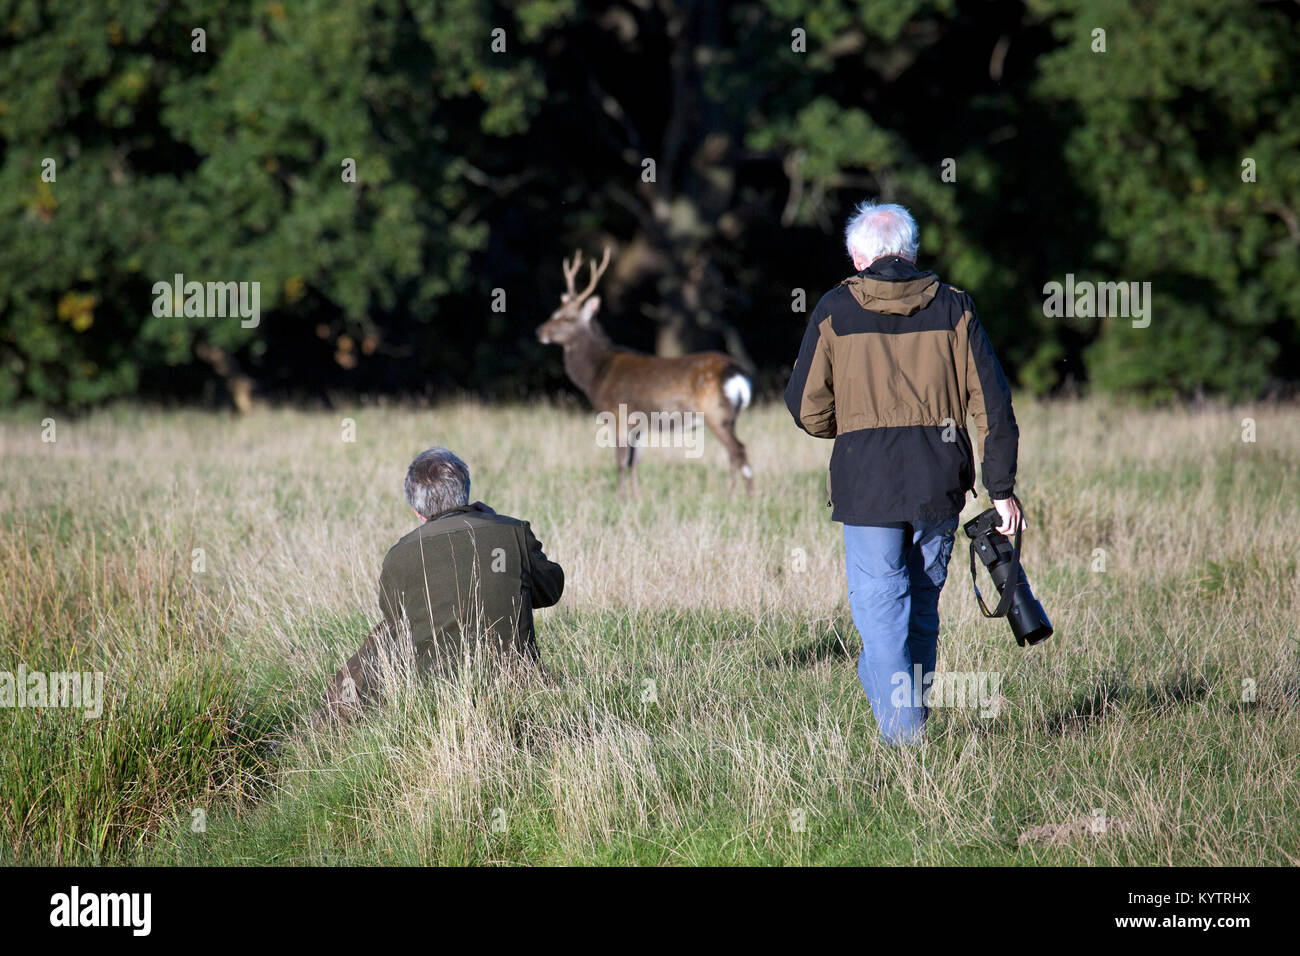 Wildlife photographers / nature photographer approaching Sika deer / spotted deer/ Japanese deer (Cervus nippon) - Stock Image